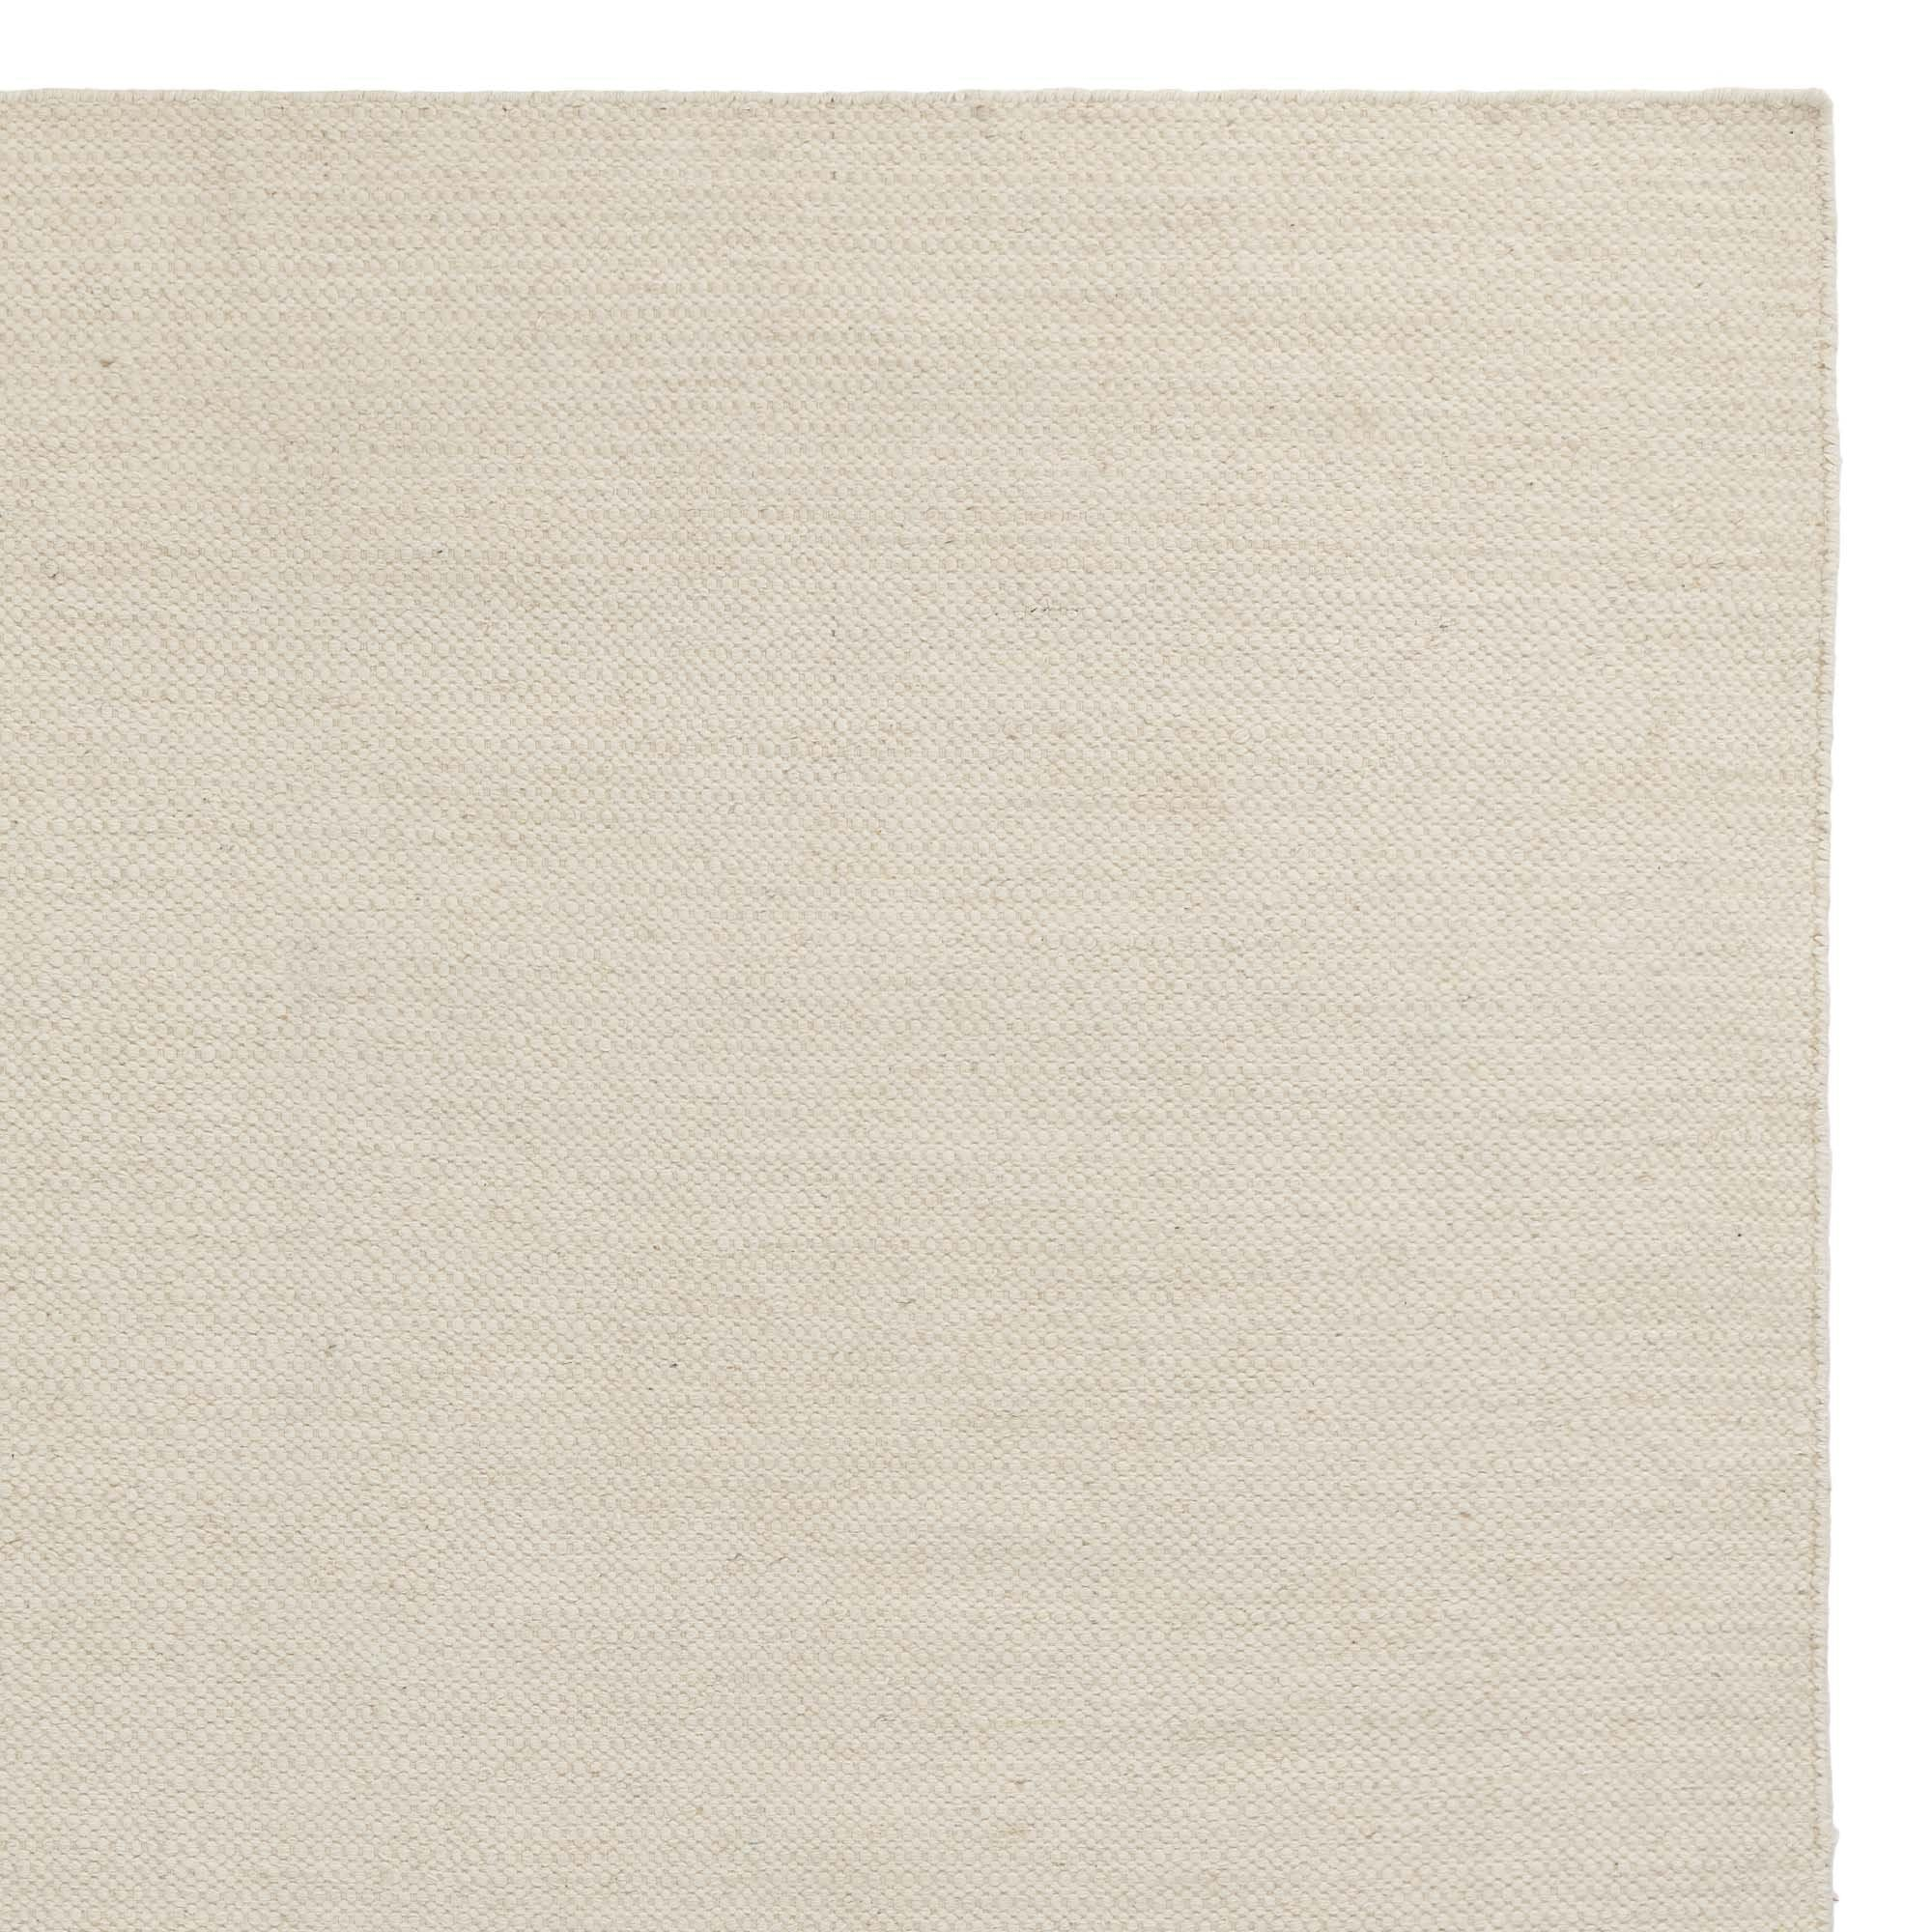 Udana rug, natural white, 100% wool